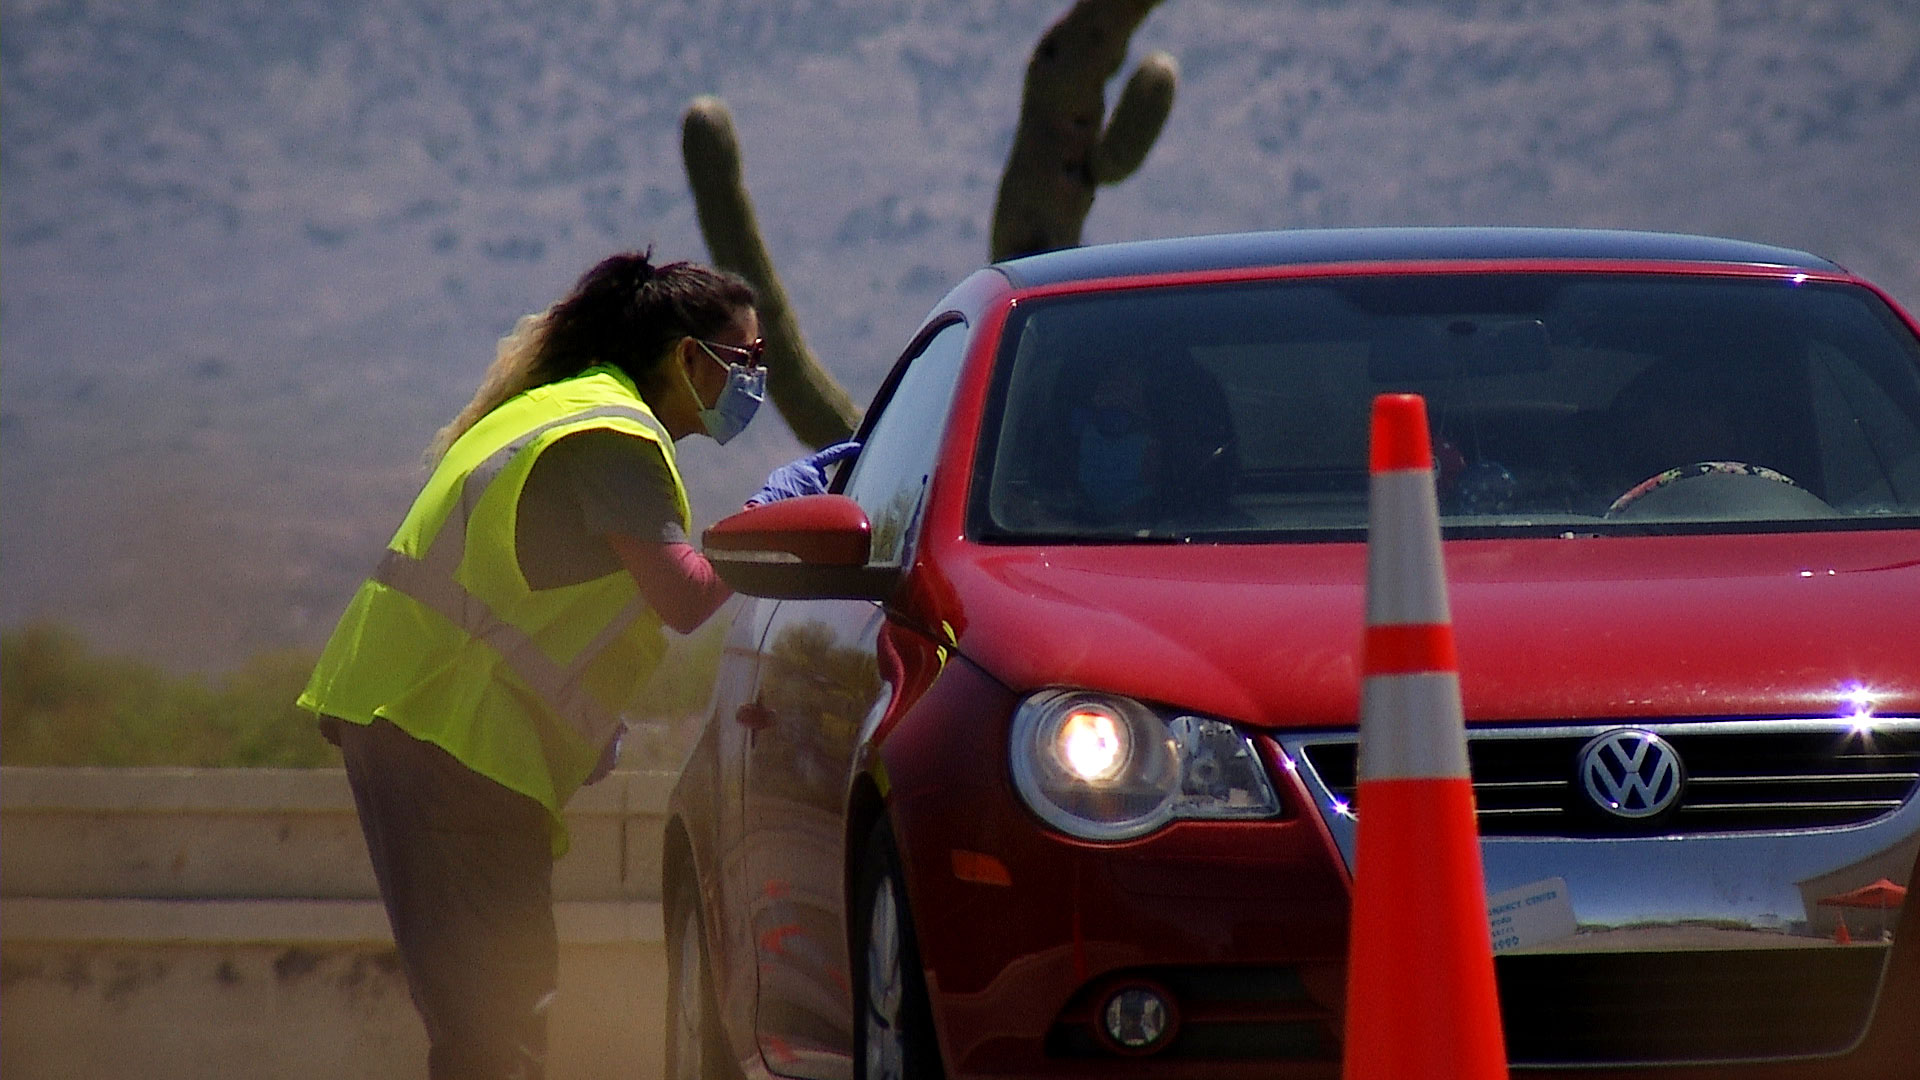 A woman speaks to someone in a vehicle seeking a COVID-19 test at a drive-thru testing site set up at Walgreens in Tucson on April 21, 2020.